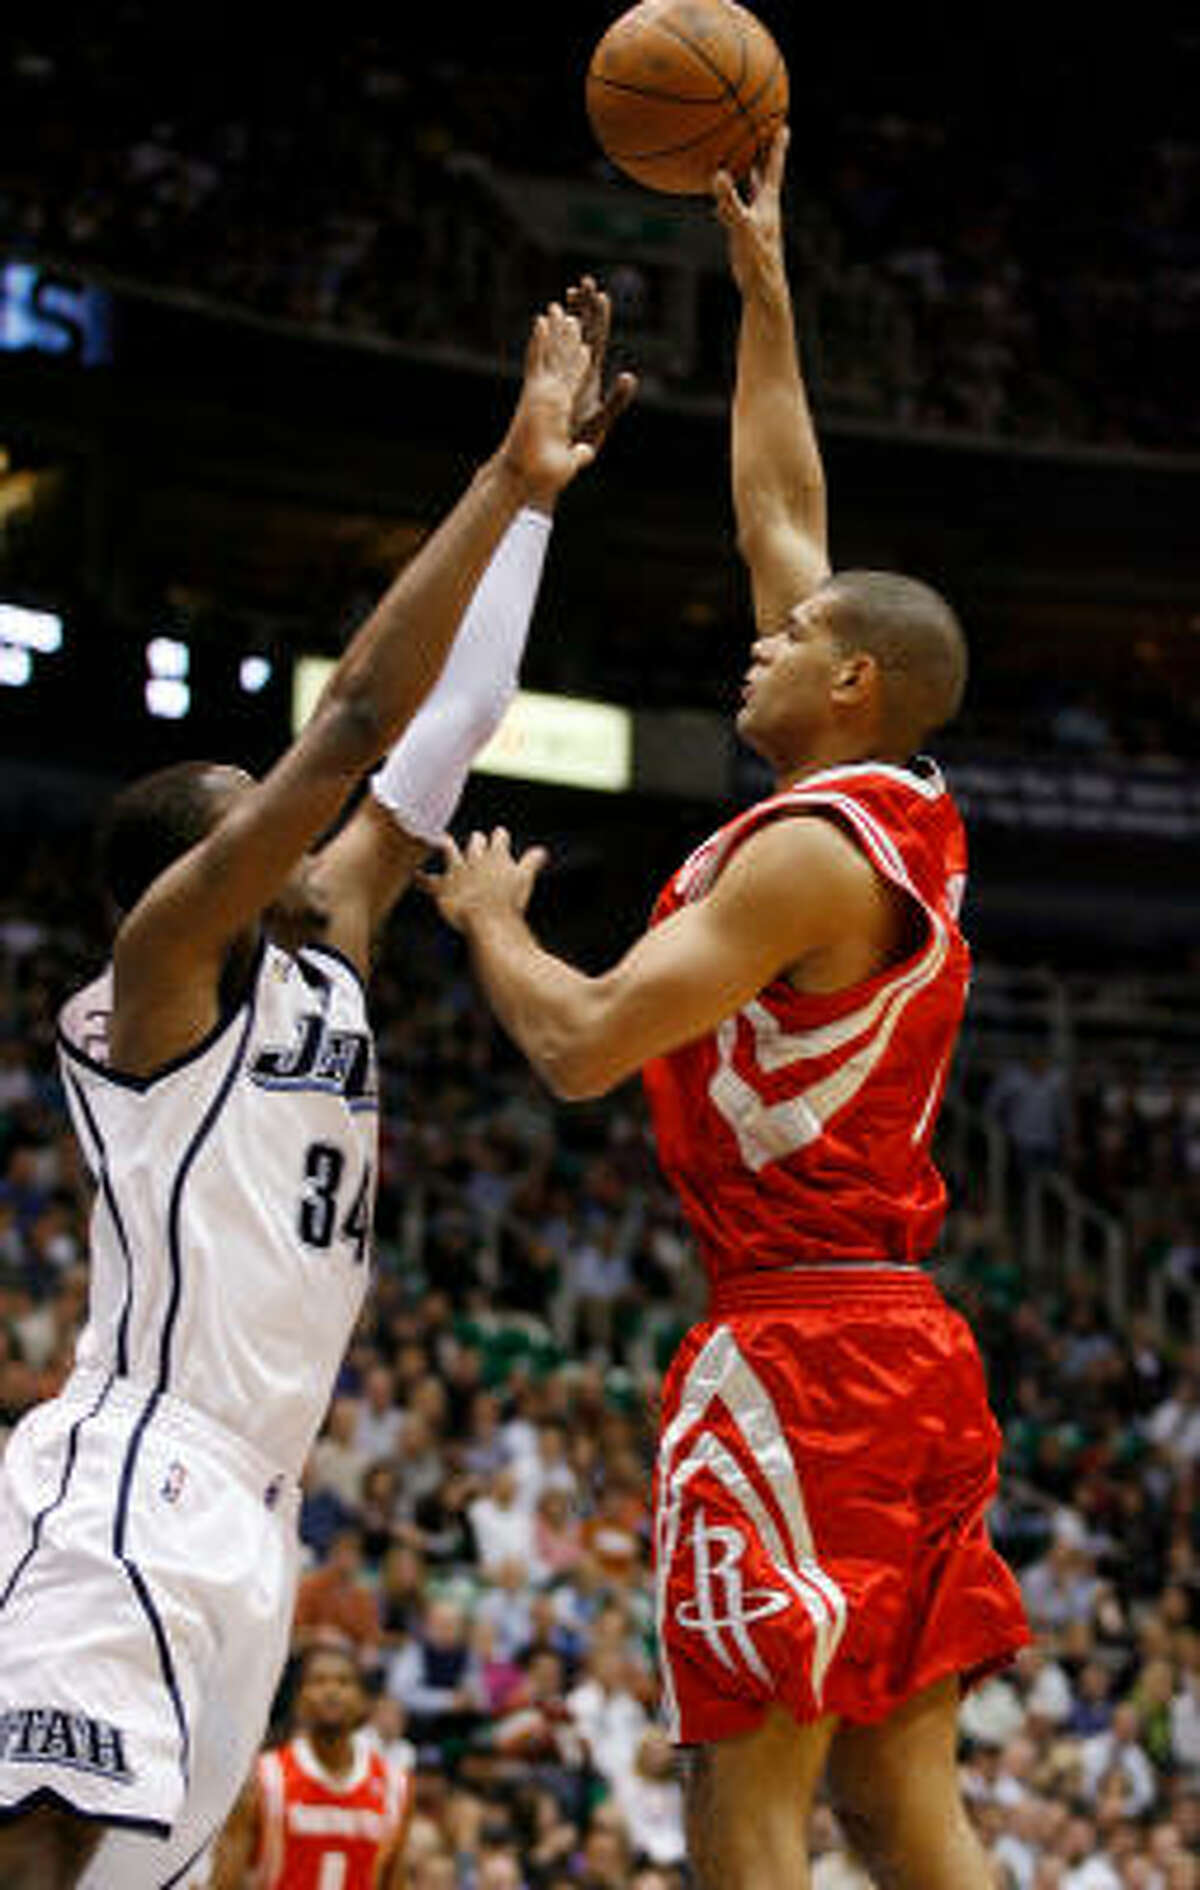 Houston Rockets forward Shane Battier puts a shot over the arms of Utah Jazz forward C.J. Miles.